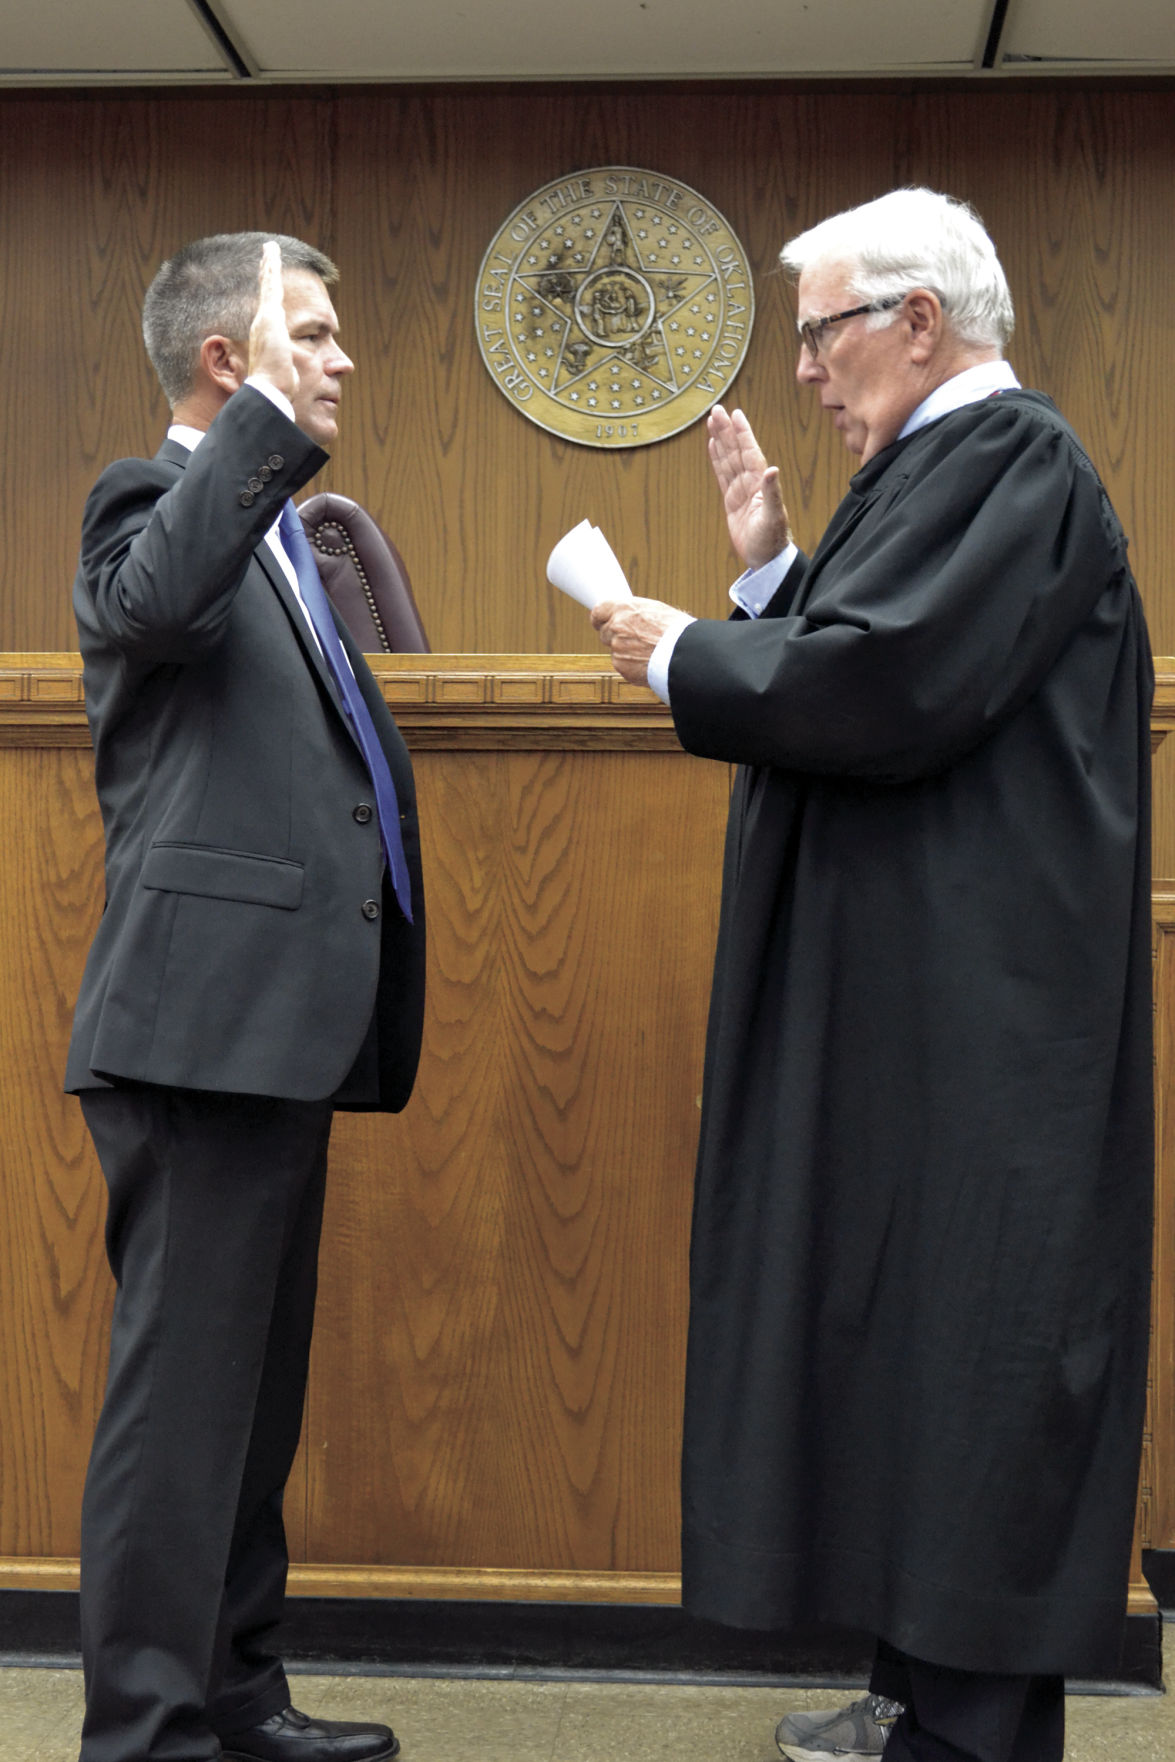 Meaders sworn in as new district judge for Comanche County